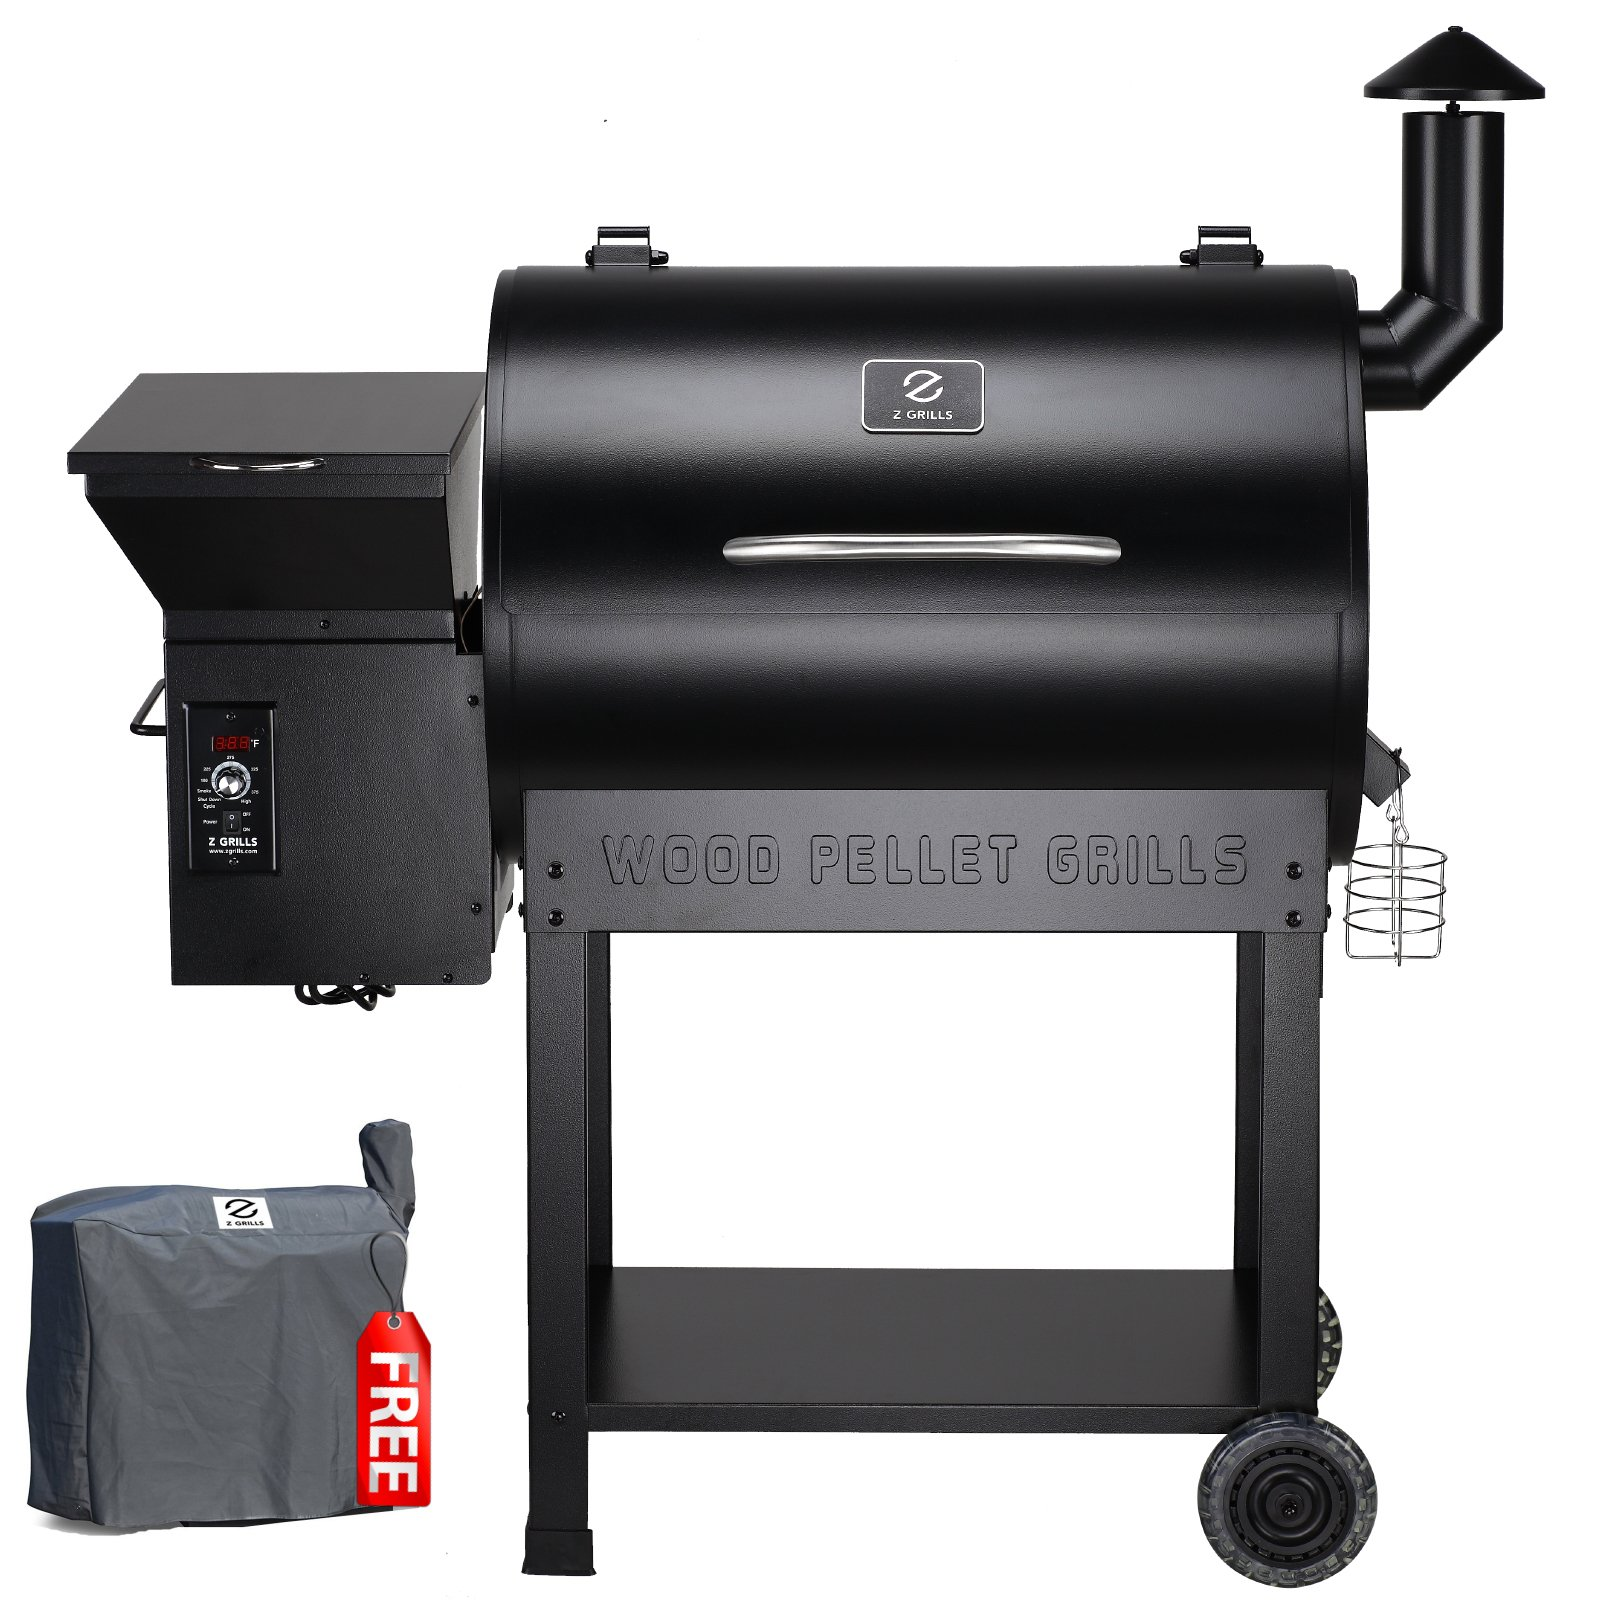 Z Grills ZPG-7002B 2019 New Model Wood Pellet Grill & Smoker, 8 in 1 BBQ Grill Auto Temperature Controls, 700 sq inch Cooking Area, Black Cover Included by Z GRILLS